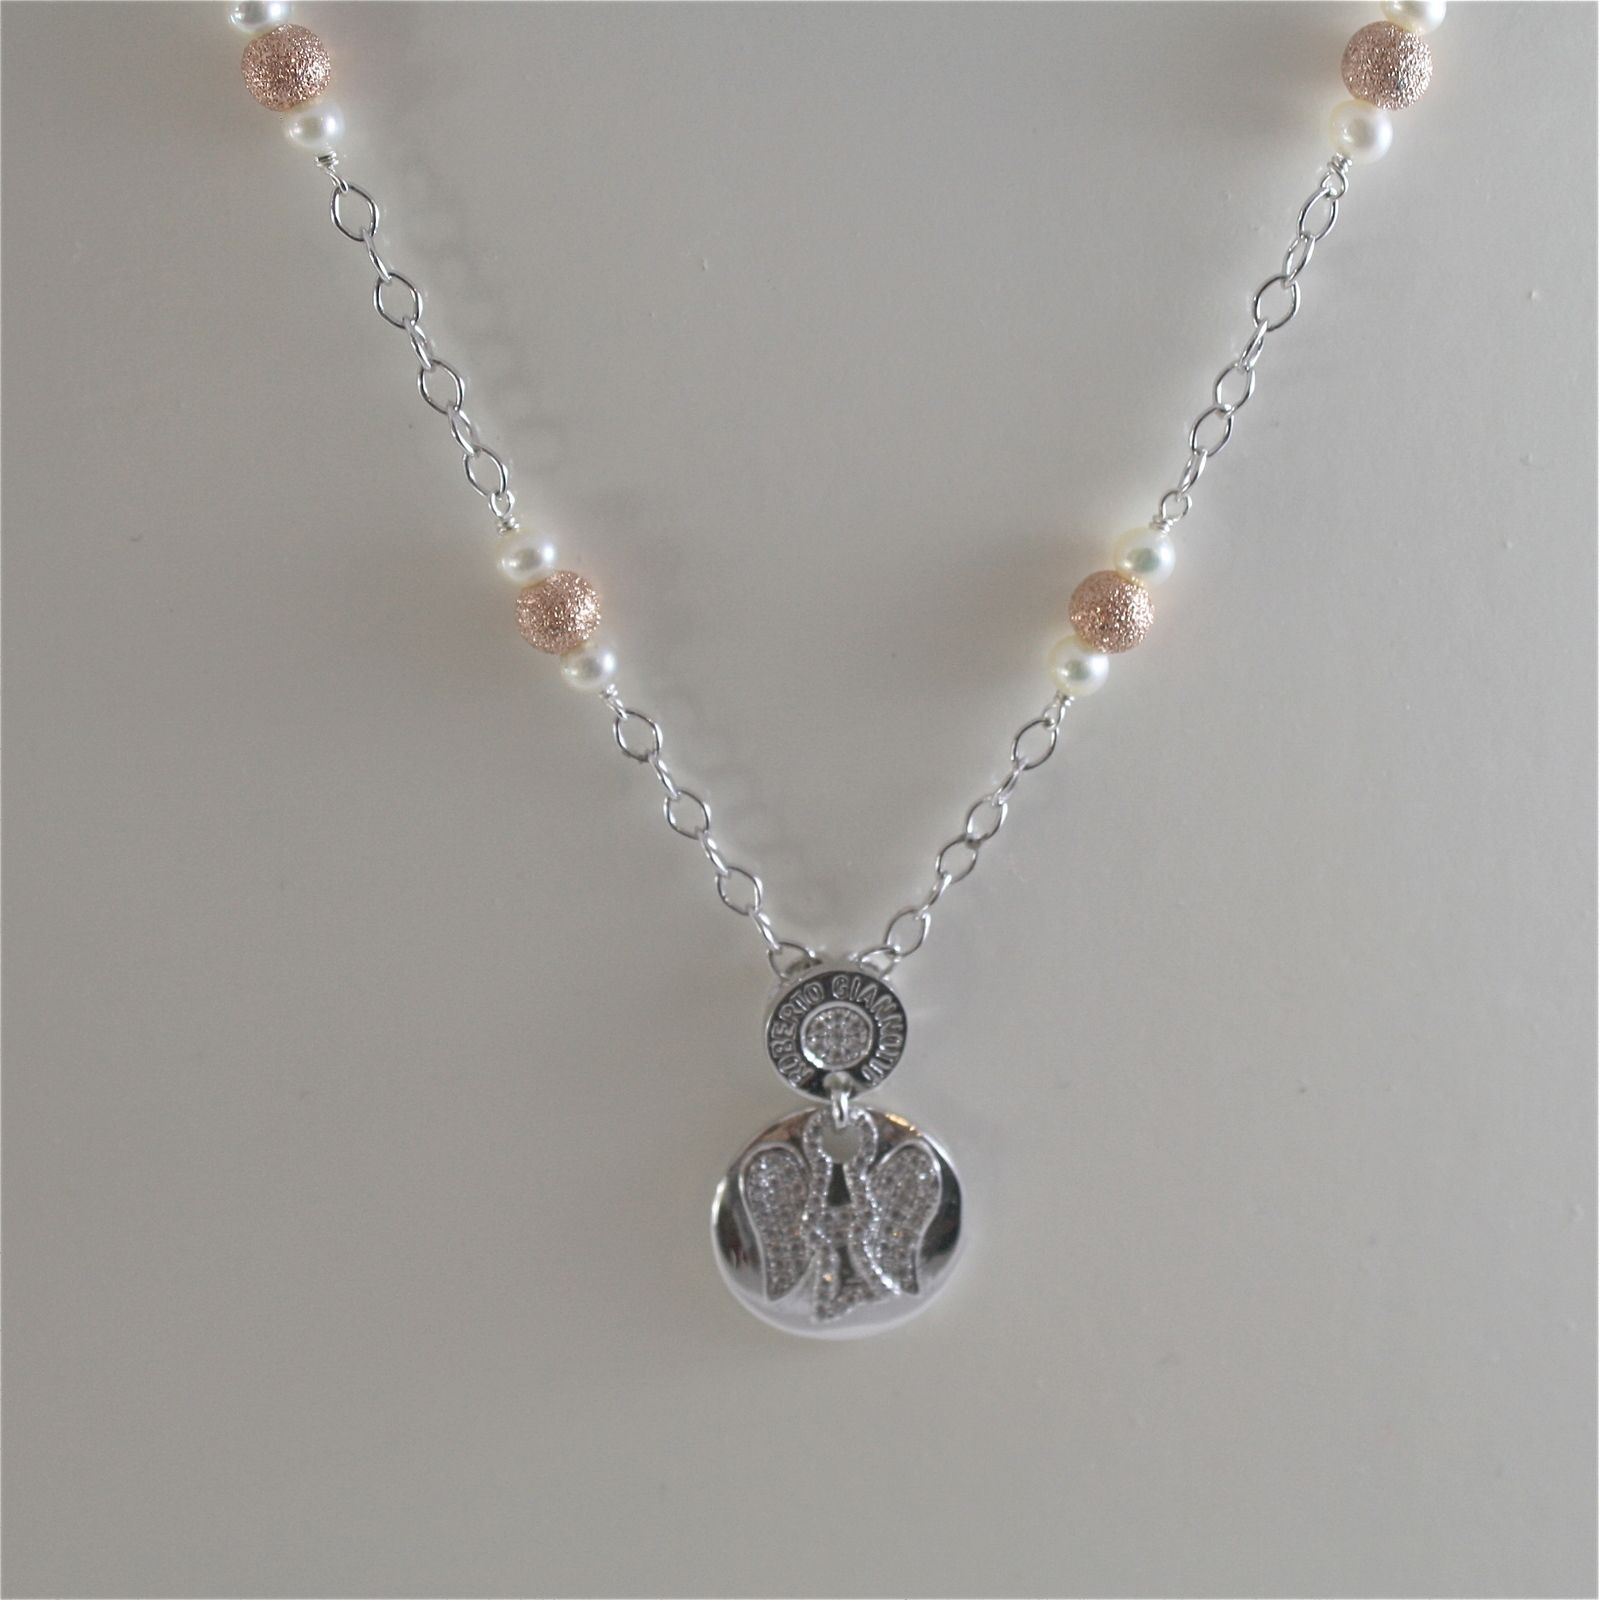 925 RODIUM SILVER NECKLACE WITH WHITE FW PEARLS AND ANGEL PENDANT, MADE IN ITALY